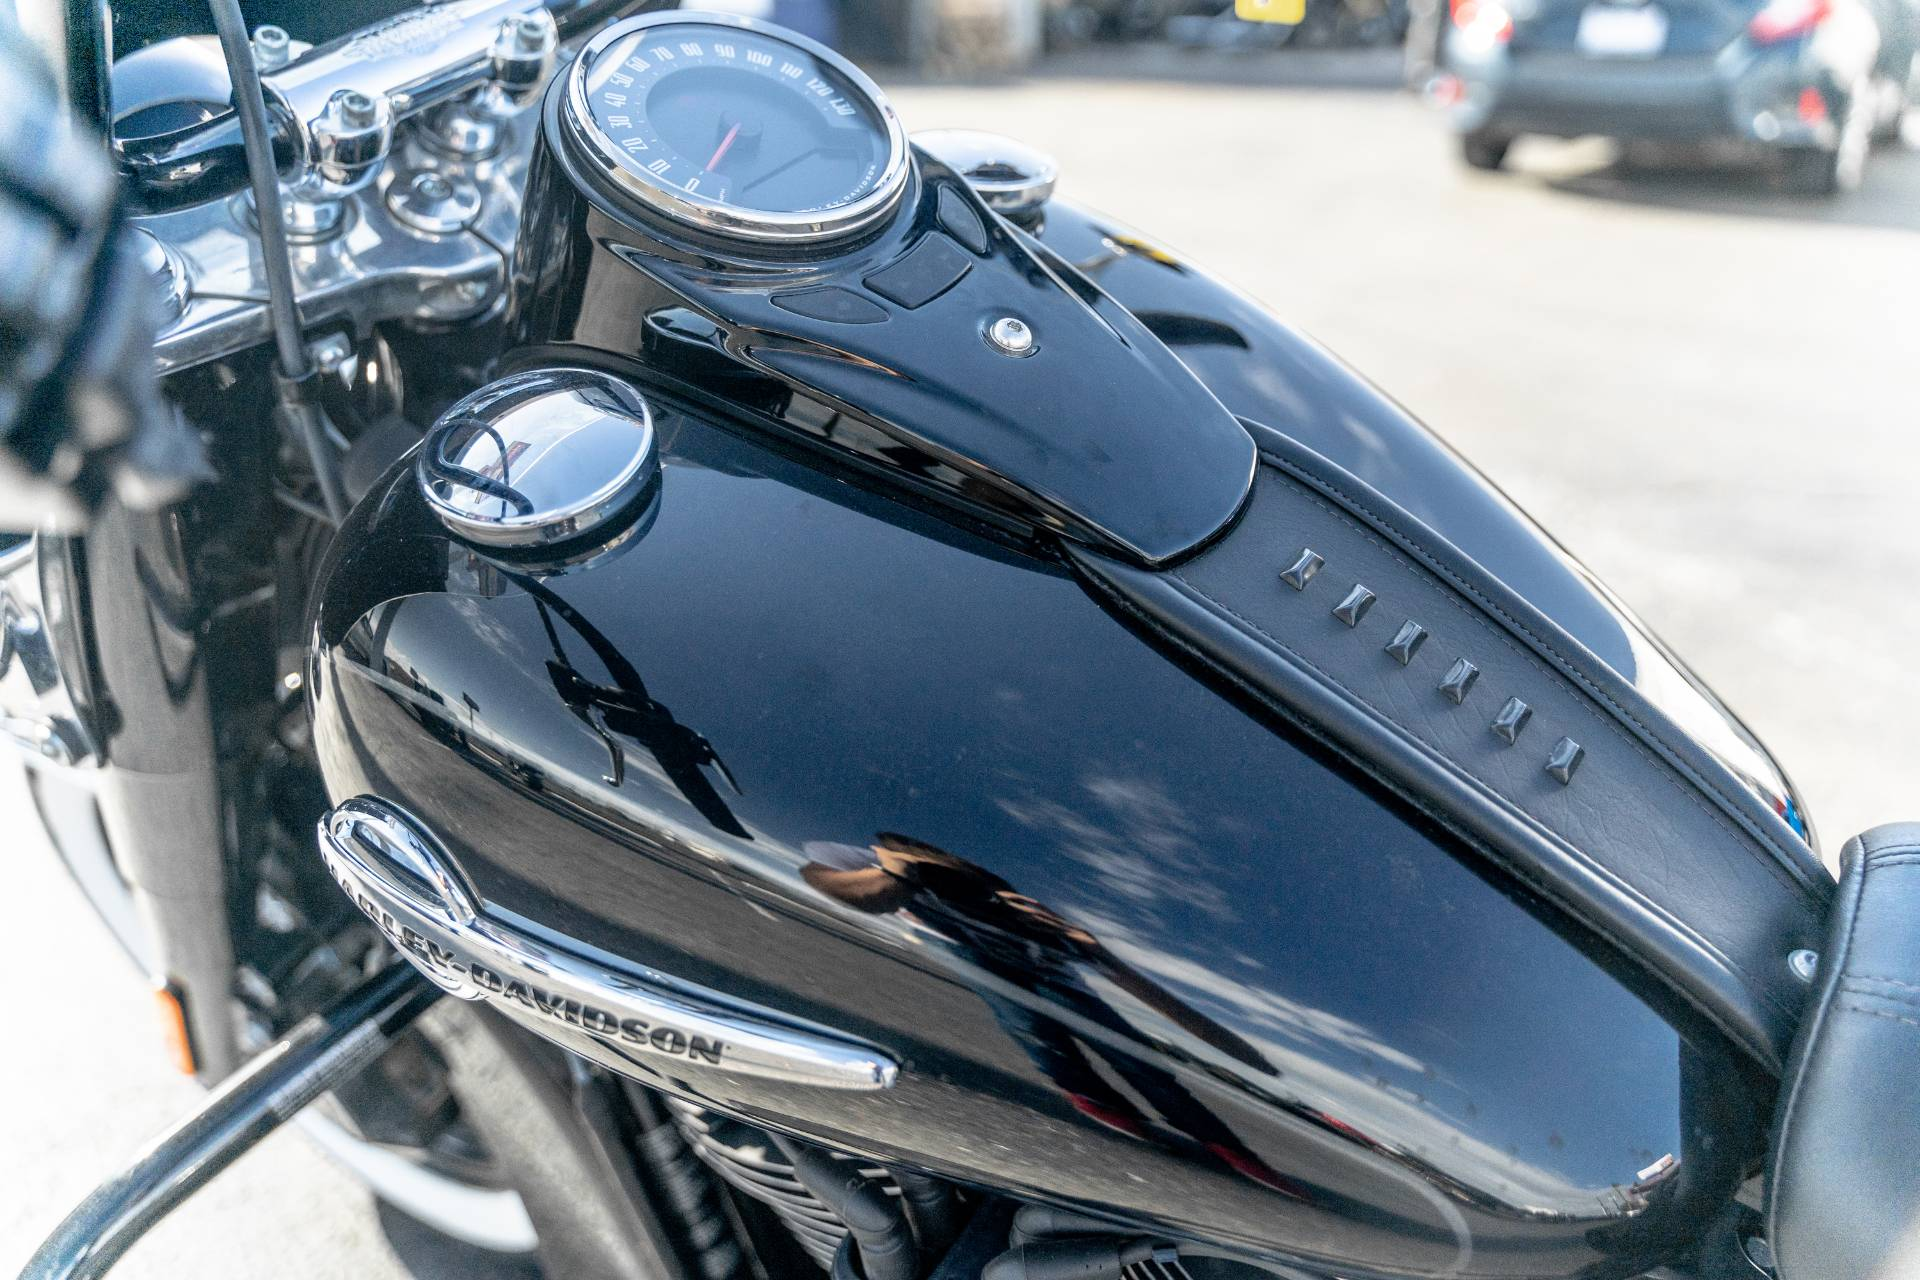 2019 Harley-Davidson Heritage Classic 114 in Houston, Texas - Photo 19